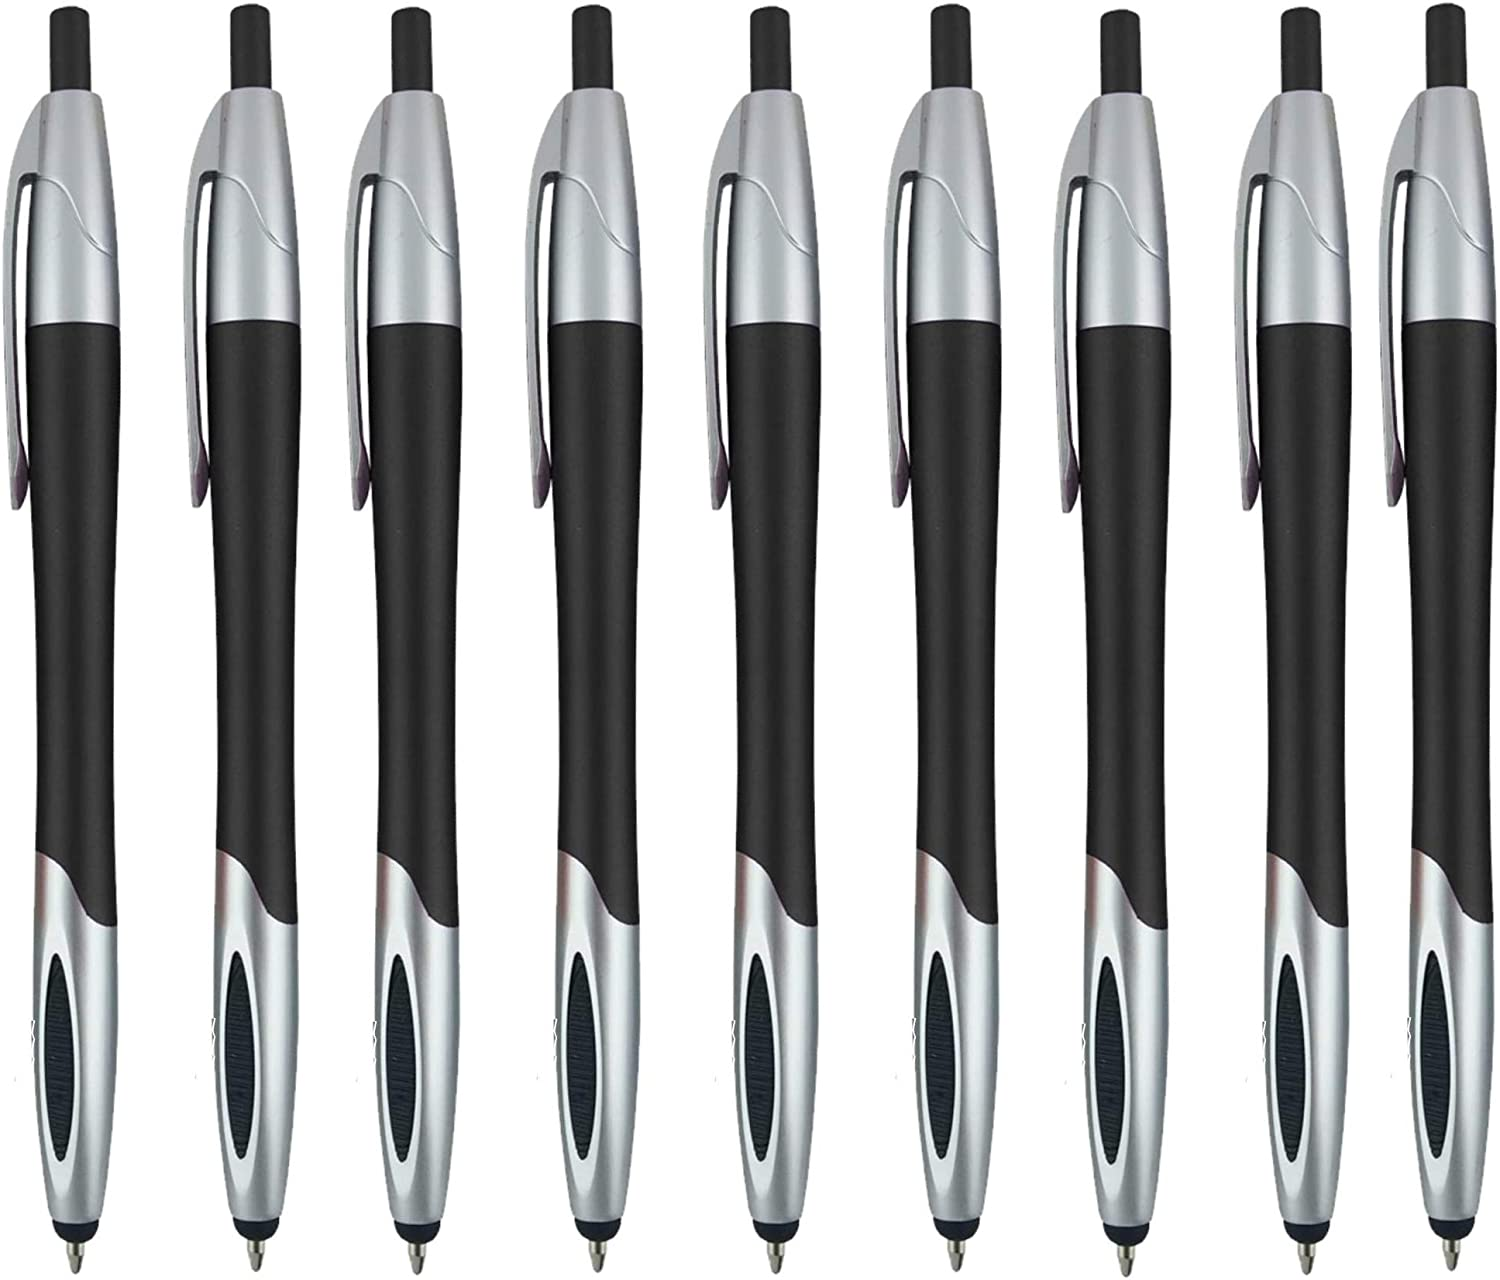 Stylus with Ball Point Pen for iPad Mini, iPad 2/3, new iPad, iPhone 5 4S 4 3GS, iPod Touch, Motorola Xoom, Xyboard, Droid, Samsung Galaxy S IV / S4, Galaxy S III/S3 (12 Pack) Black